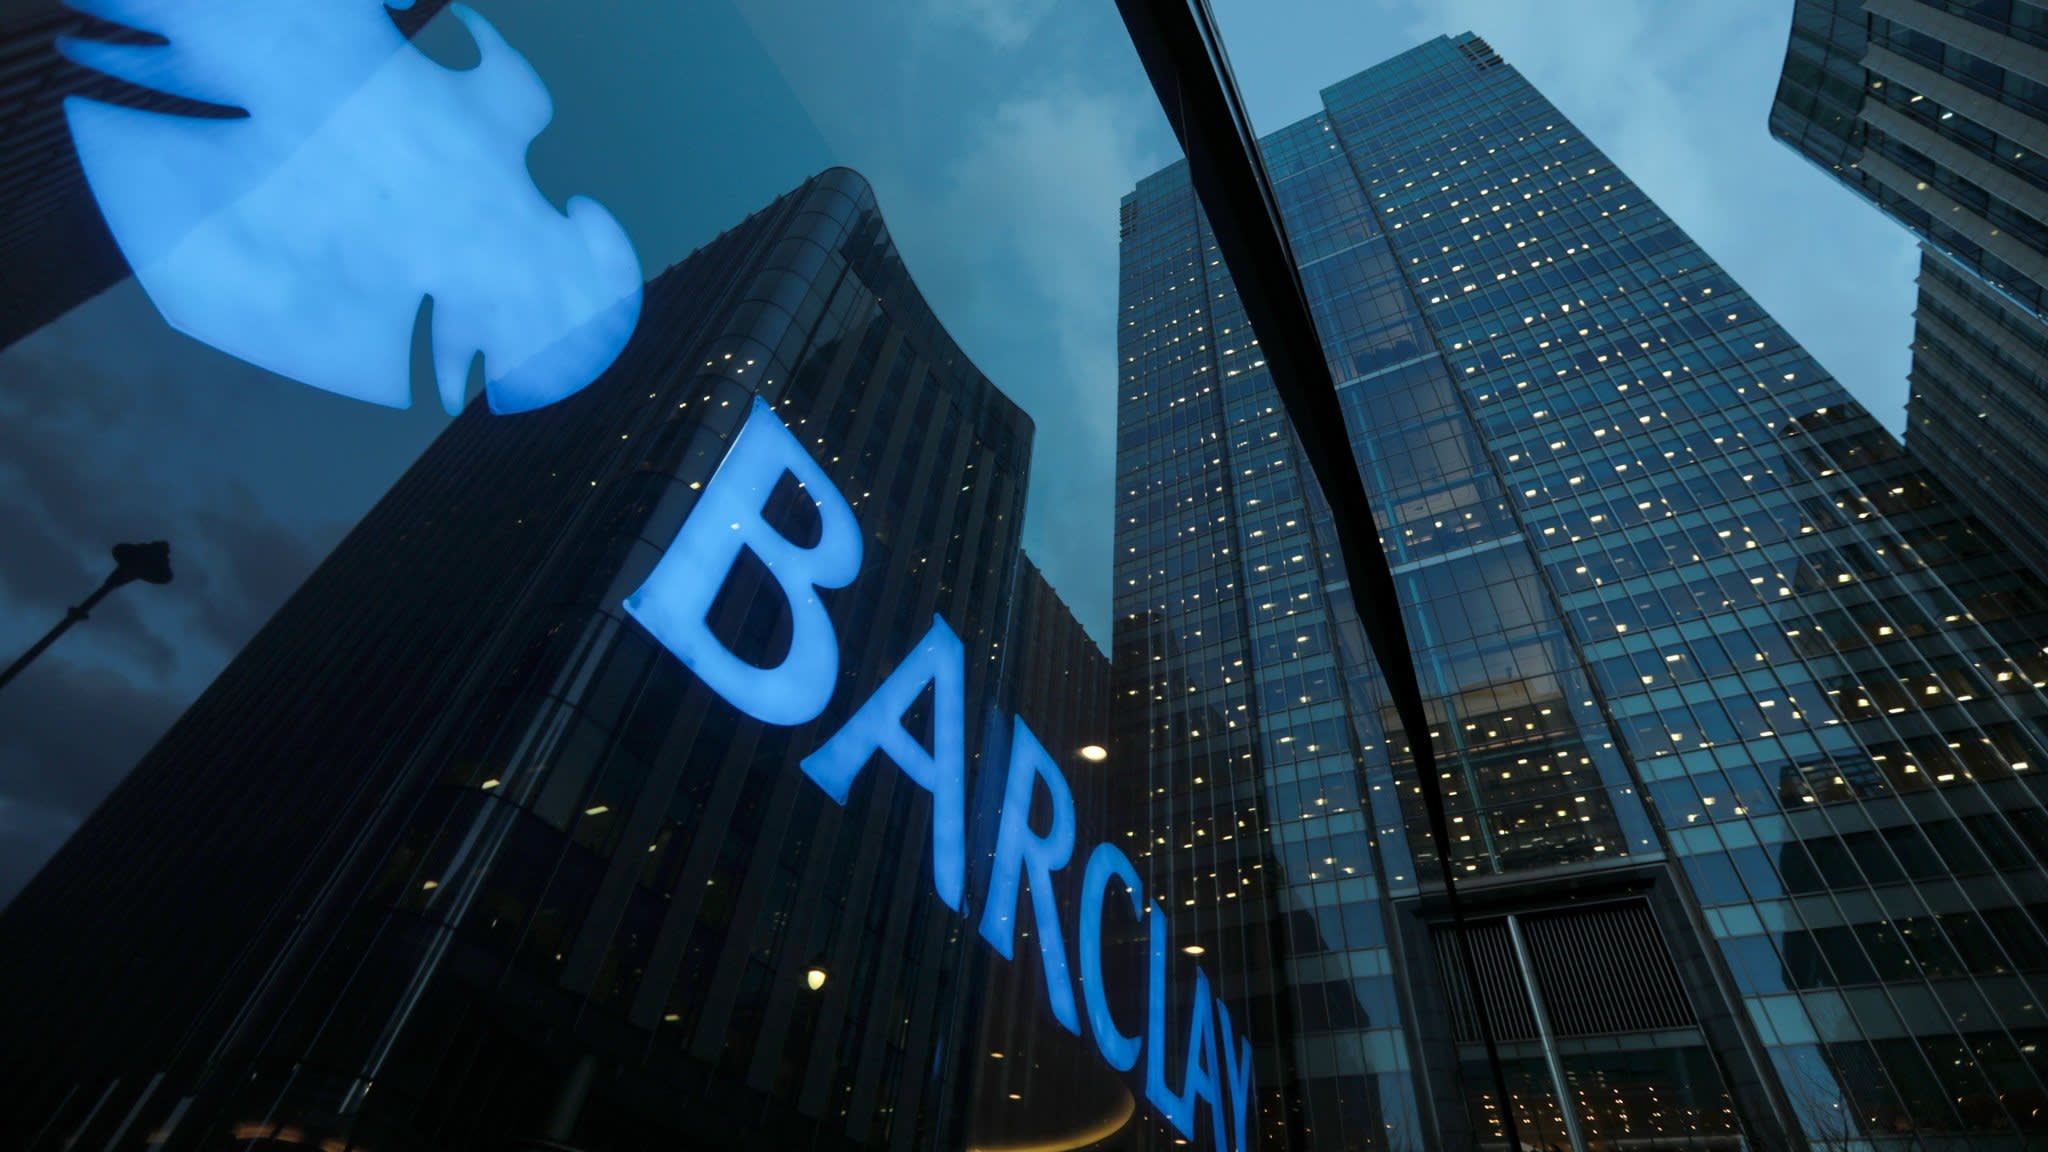 Barclays Bank faces second charge over Qatar cash injection